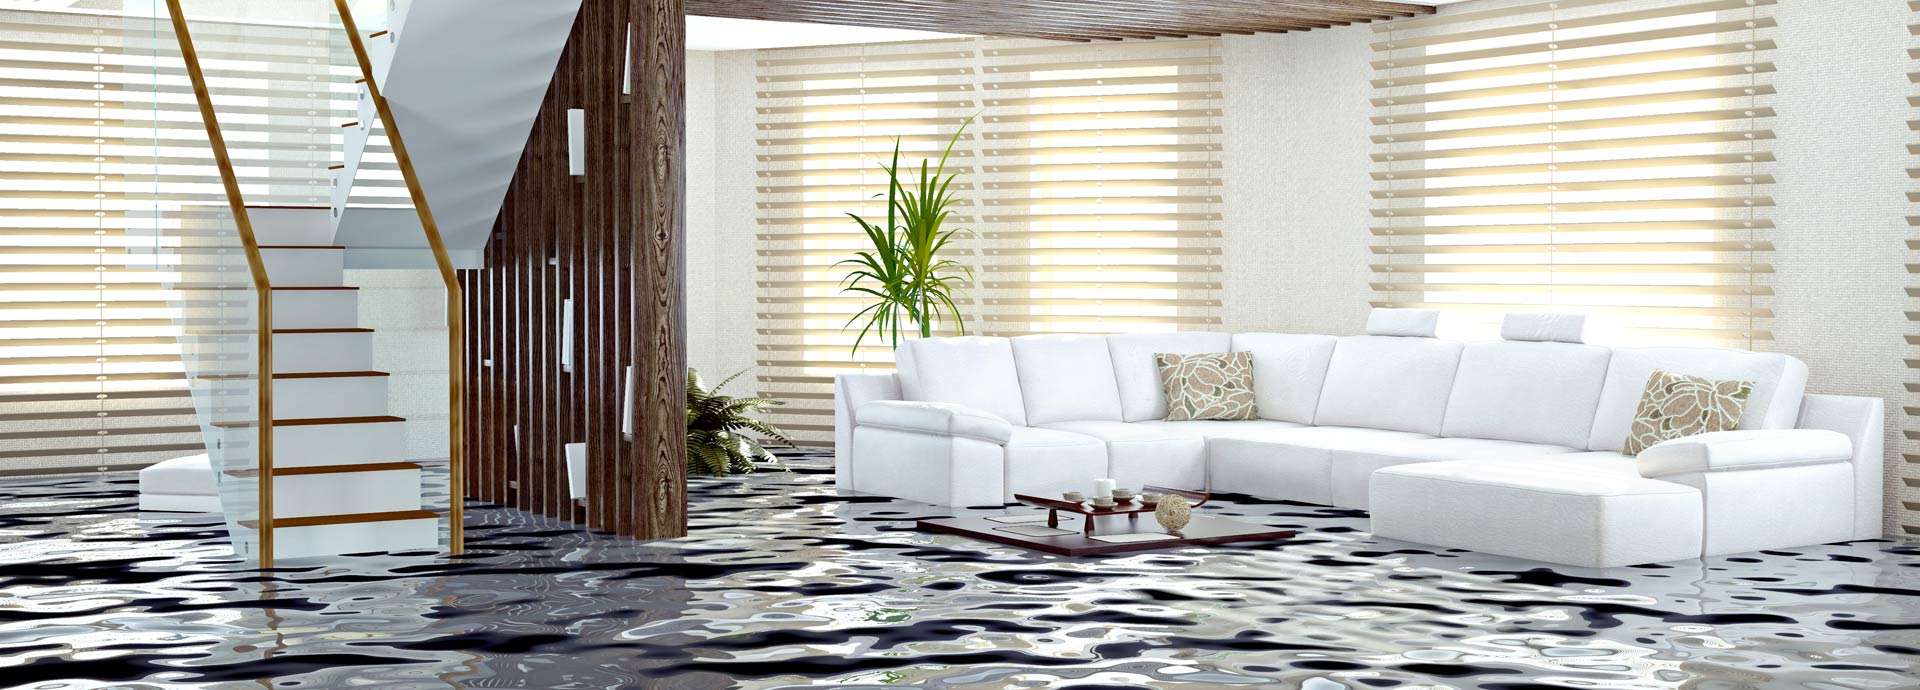 Emergency Water Damage In Houston Texas 3